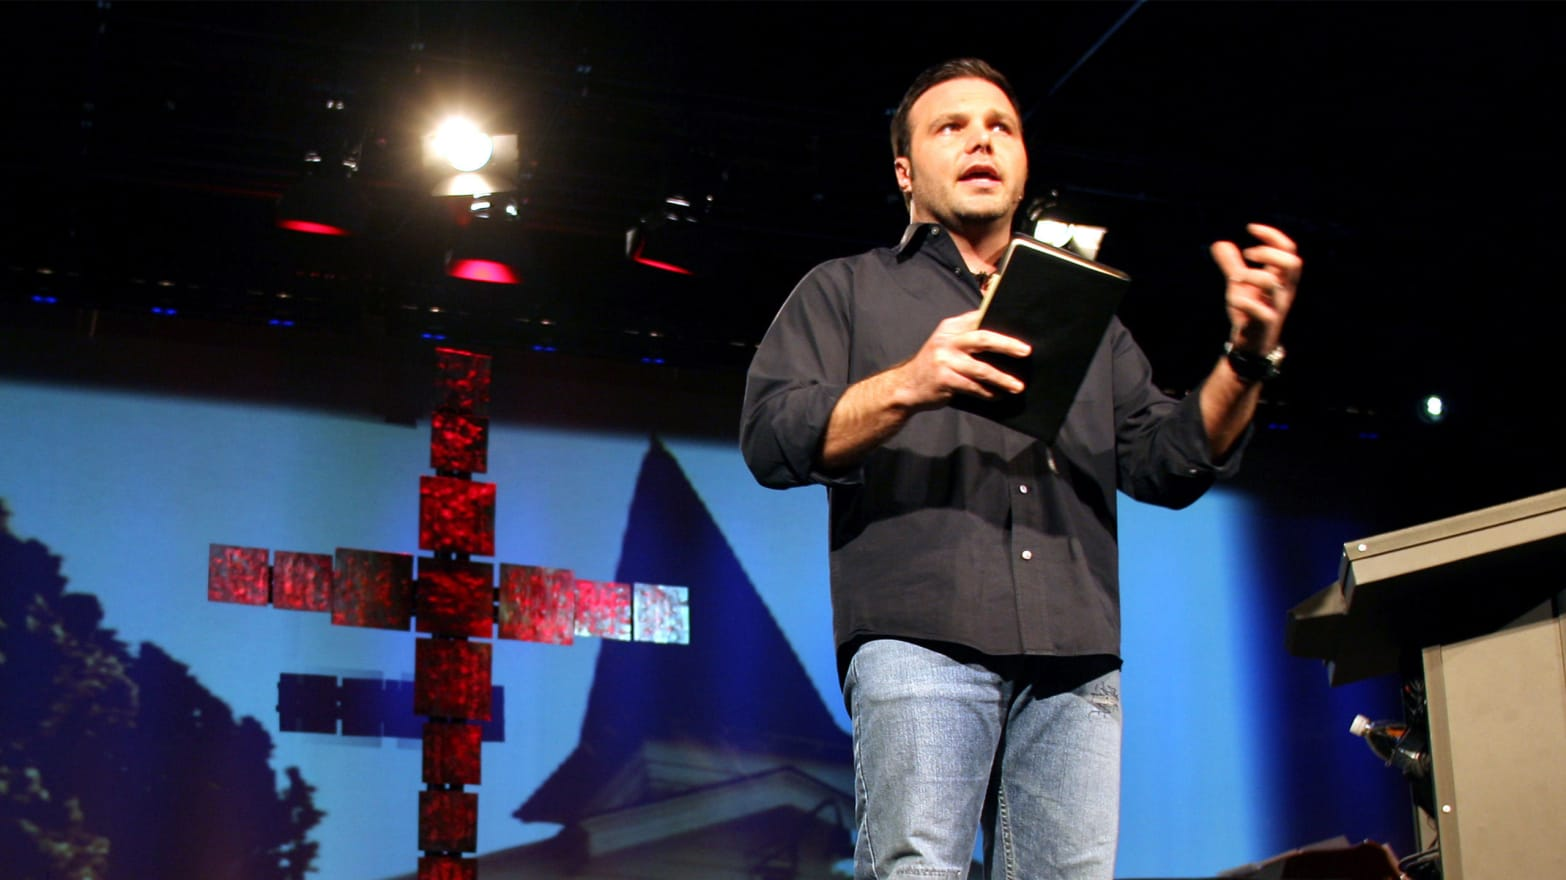 Controversial Megachurch Pastor Mark Driscoll Finds a New Flock